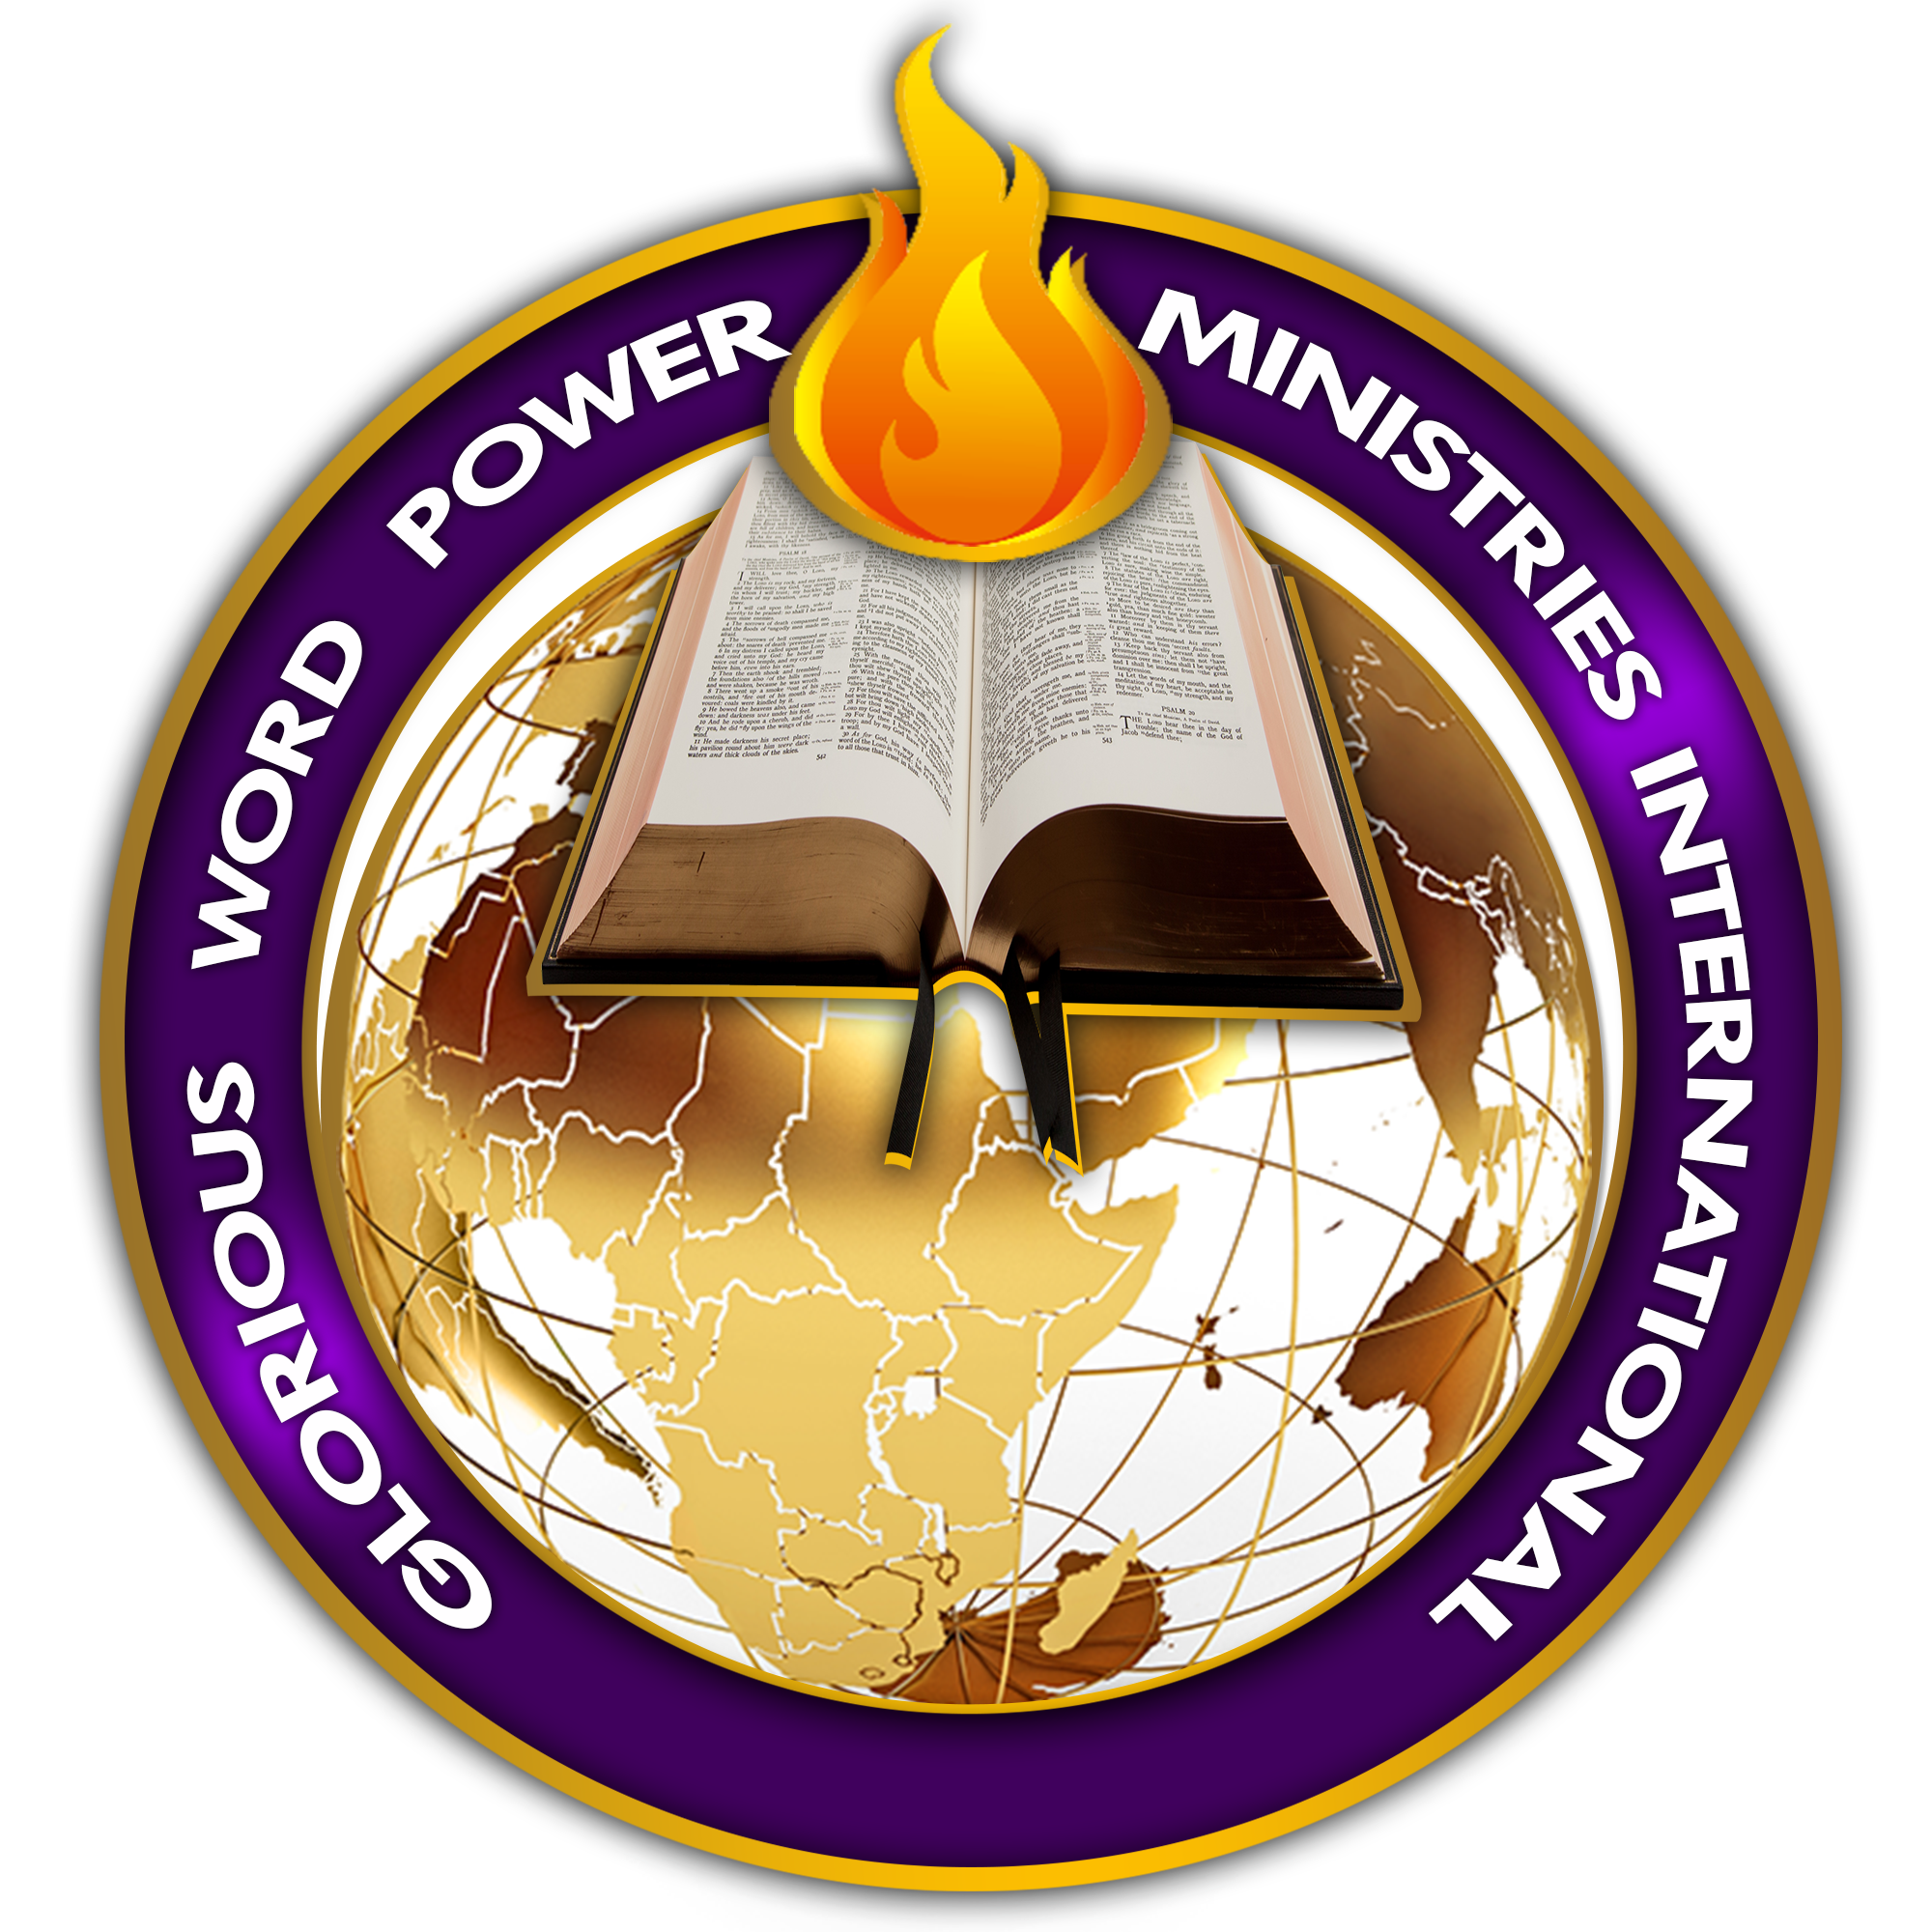 Glorious Word Power Ministries International